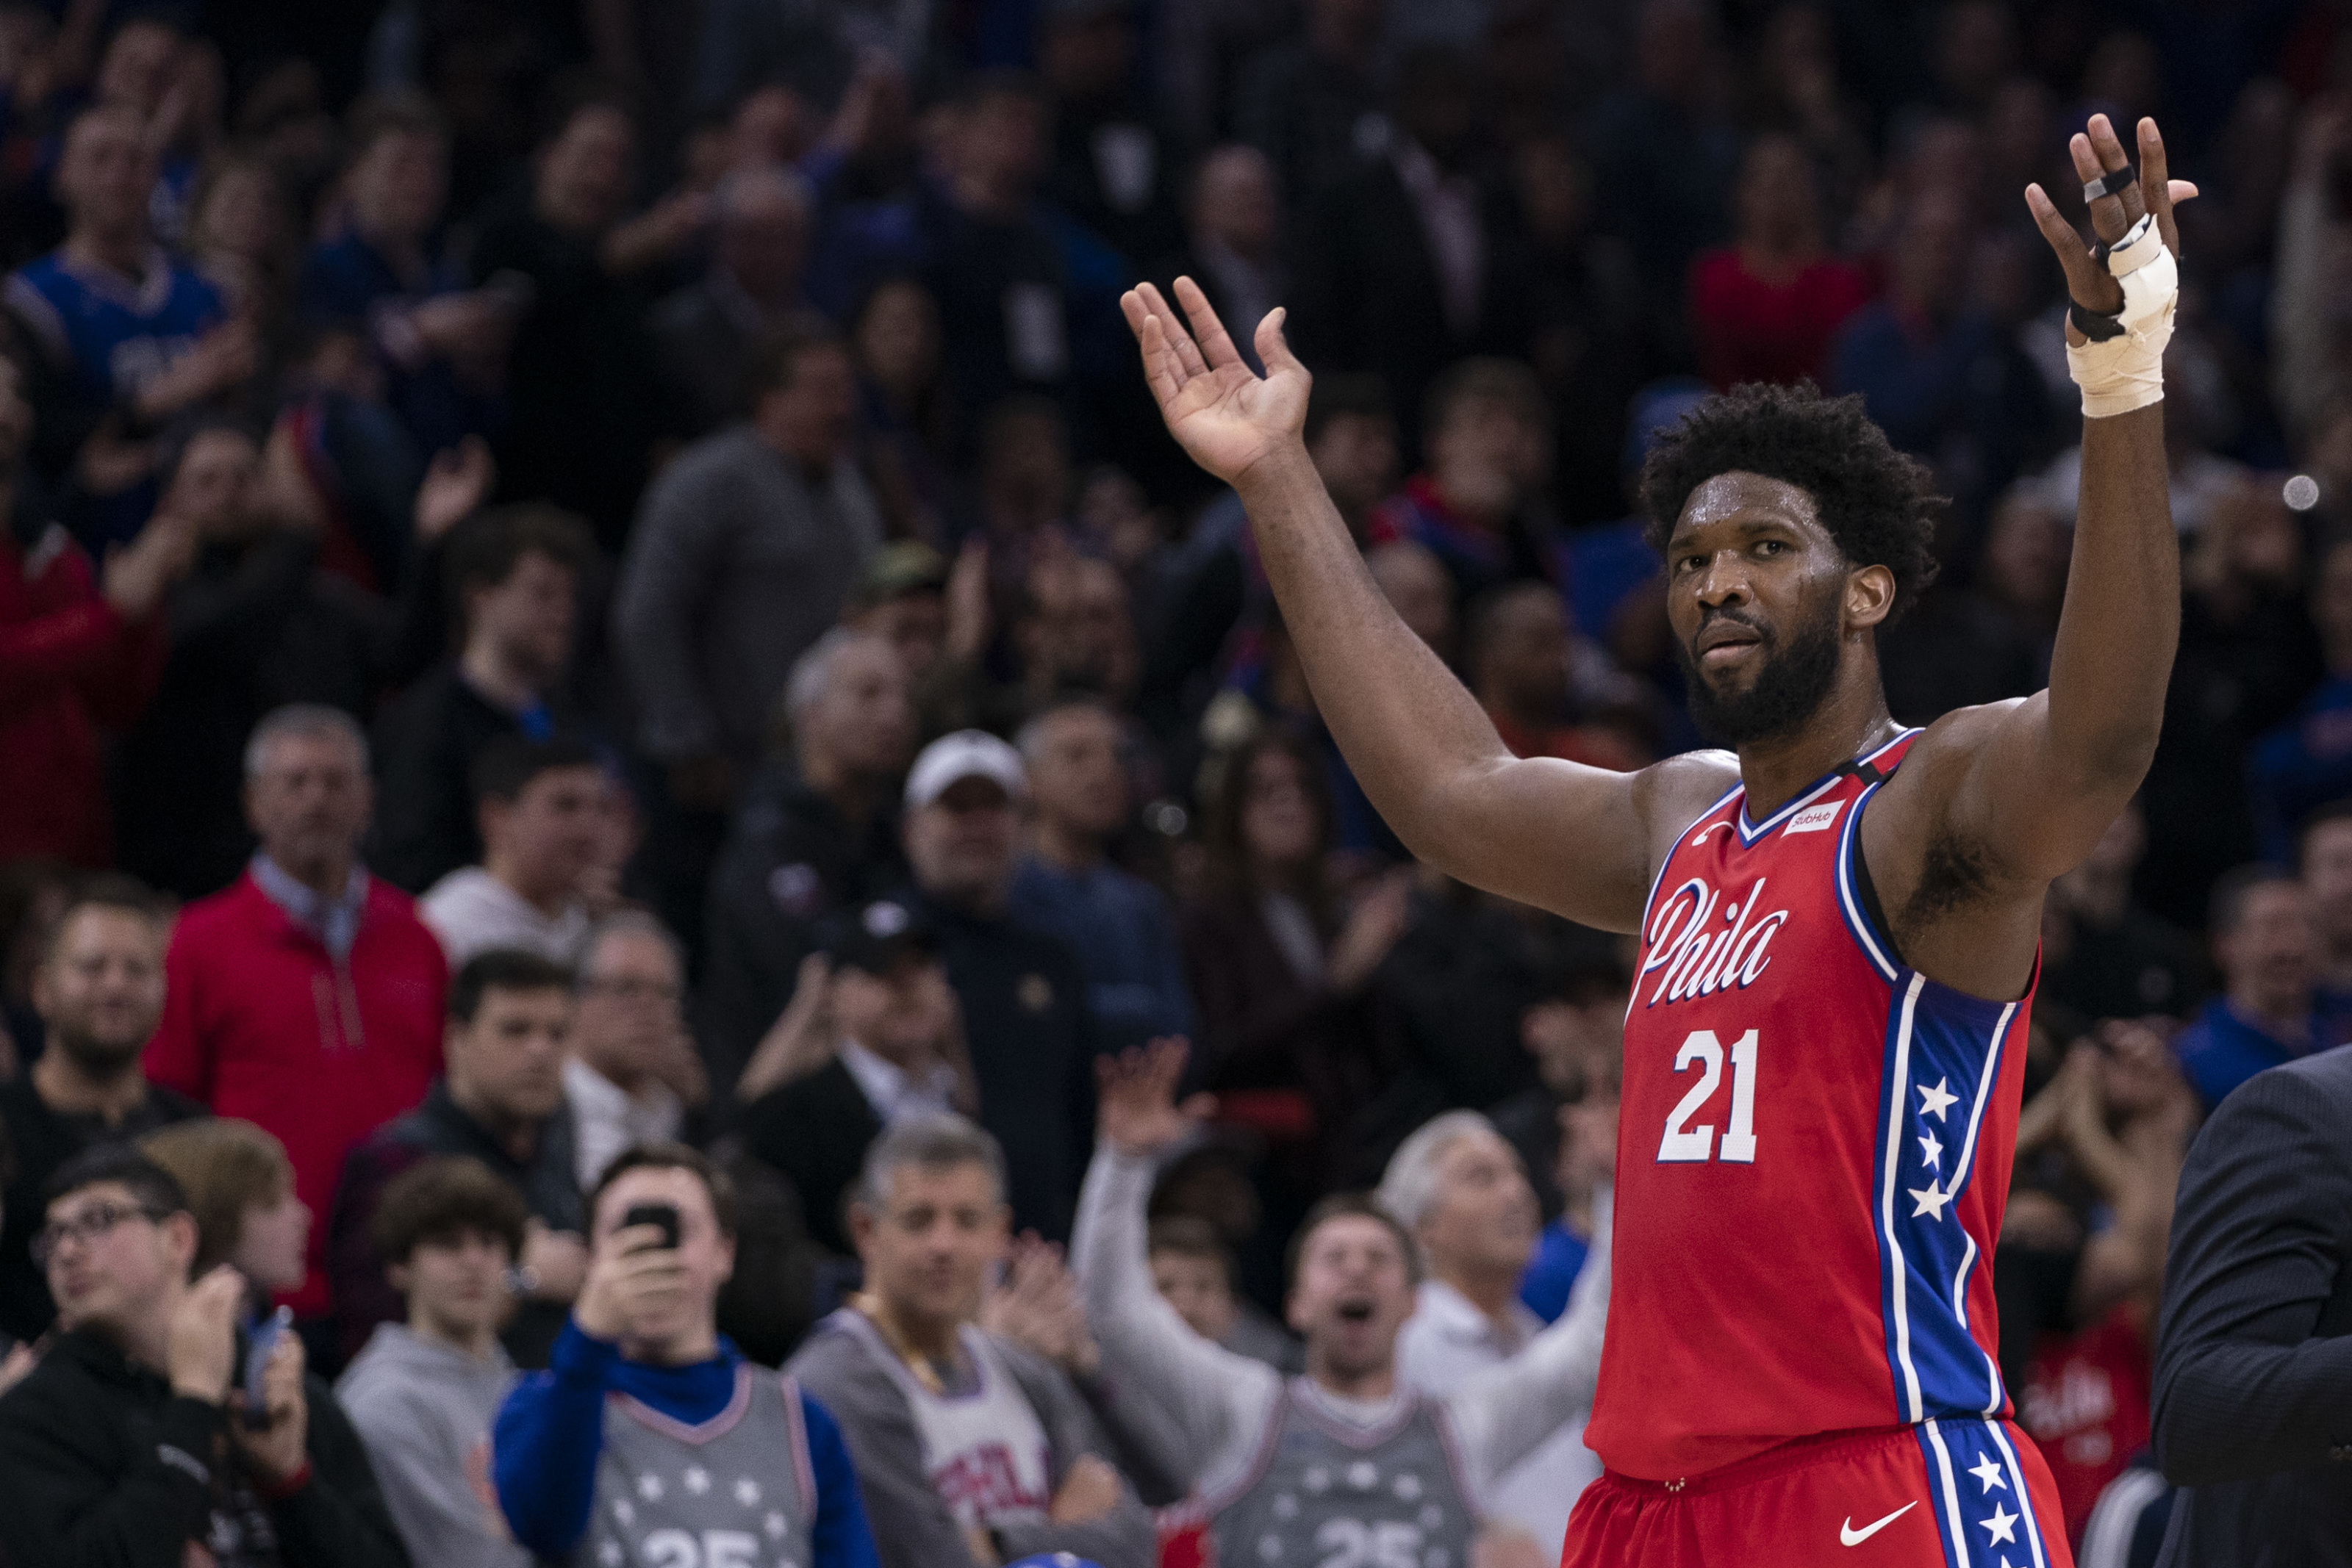 Joel Embiid's euro step was a hilarious travel (Video)